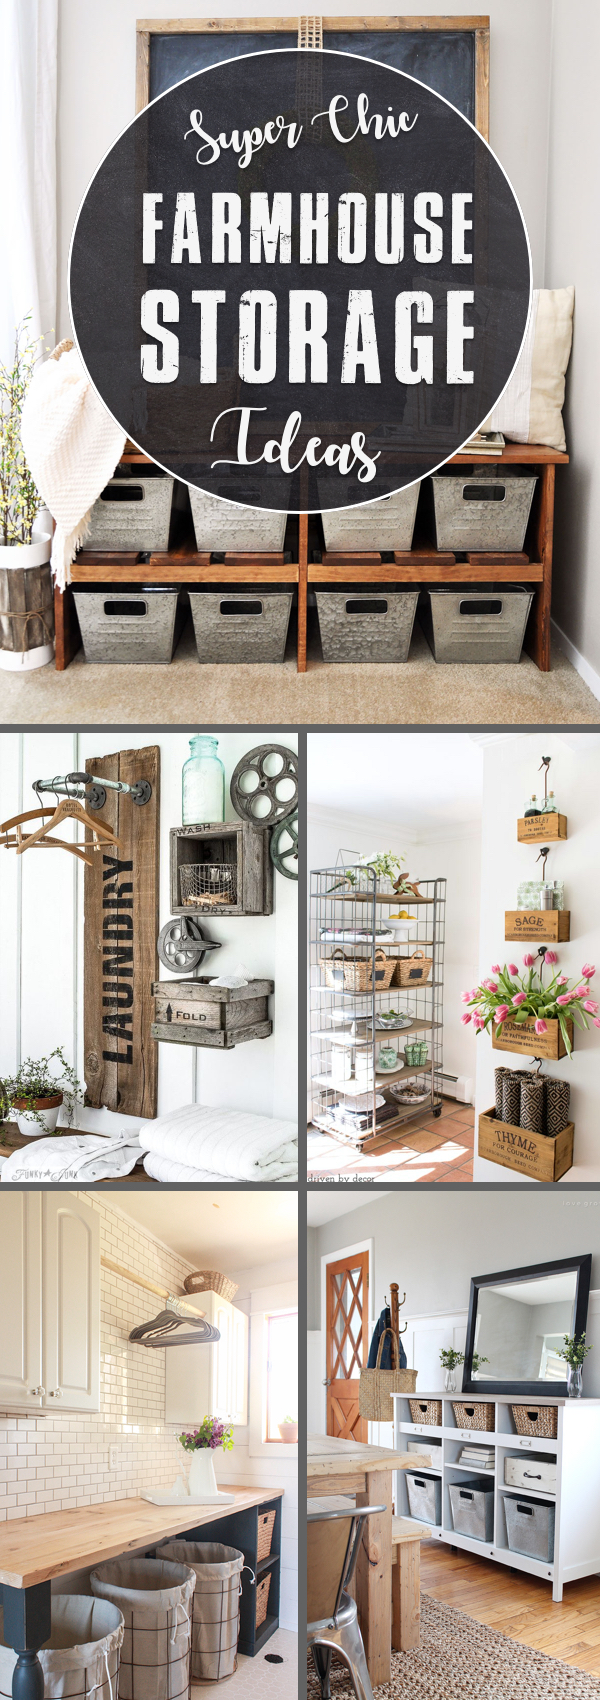 20 Simple yet Super Chic Farmhouse Storage